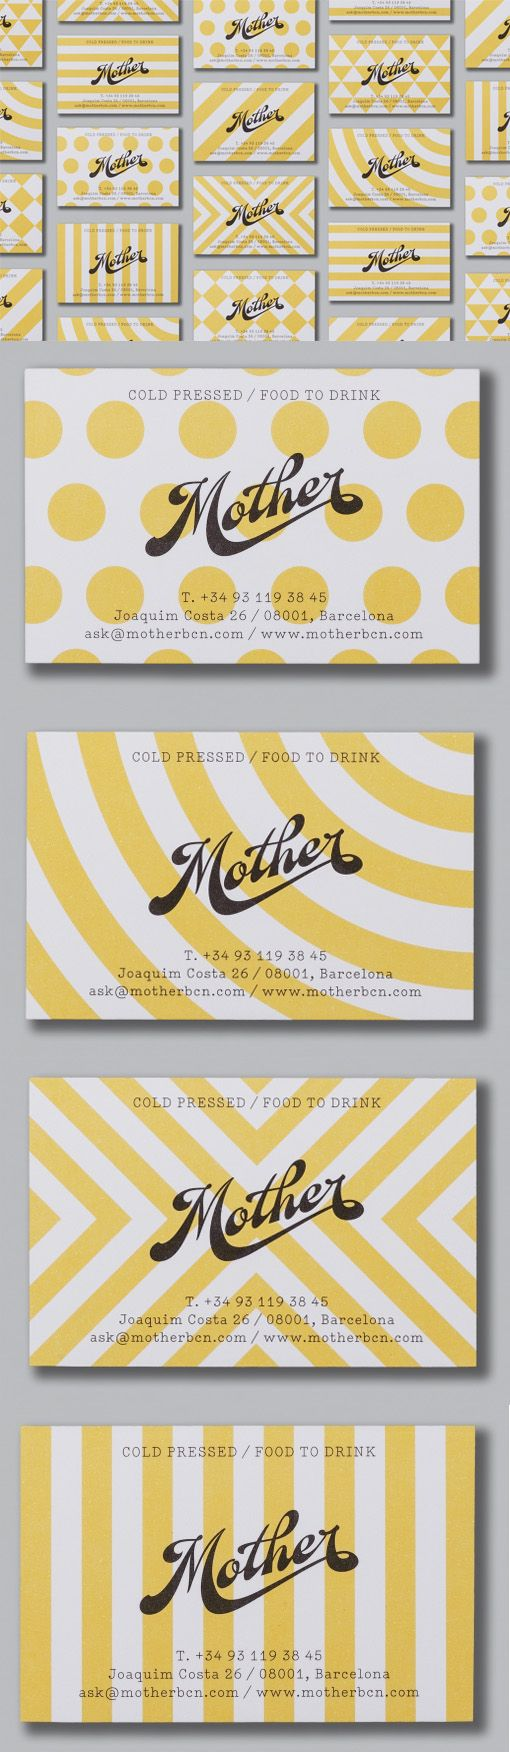 Bold Patterns Show Off Great Typography On A Business Card For A Natural Beverage Company